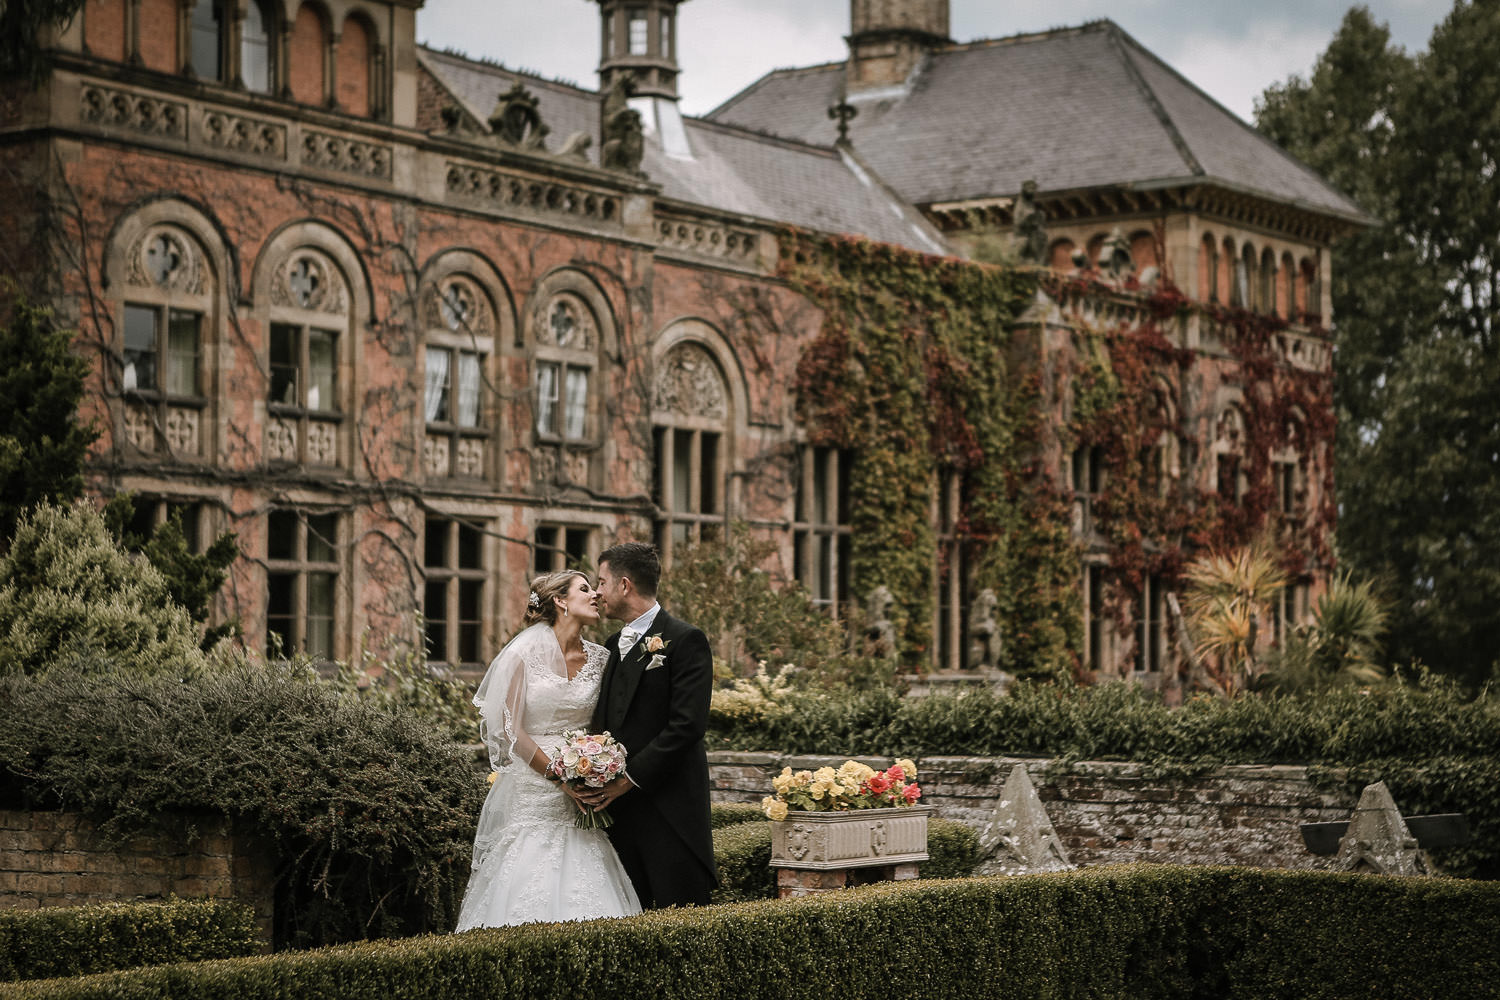 Cheshire wedding photographer. Bride and groom kissing in the garden of Soughton Hall wedding venue